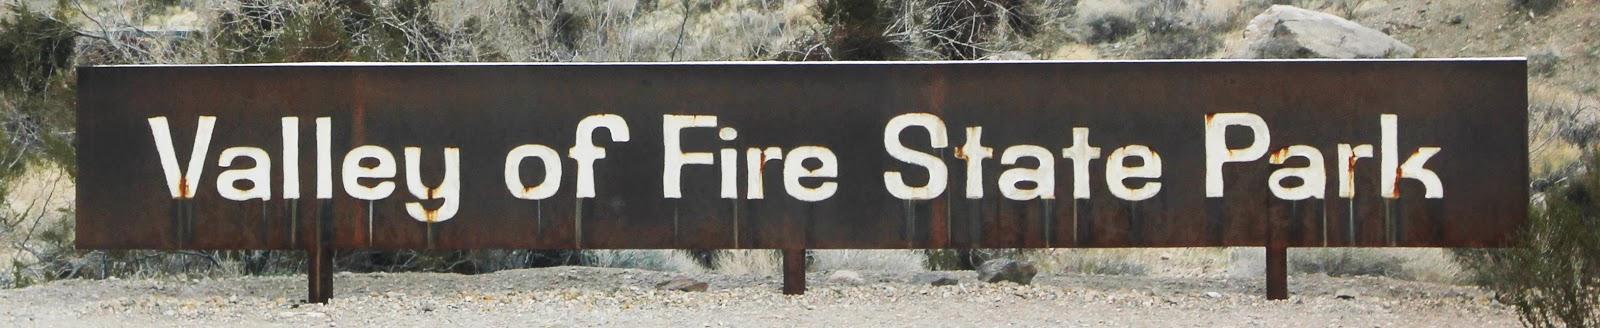 http://parks.nv.gov/parks/valley-of-fire-state-park/